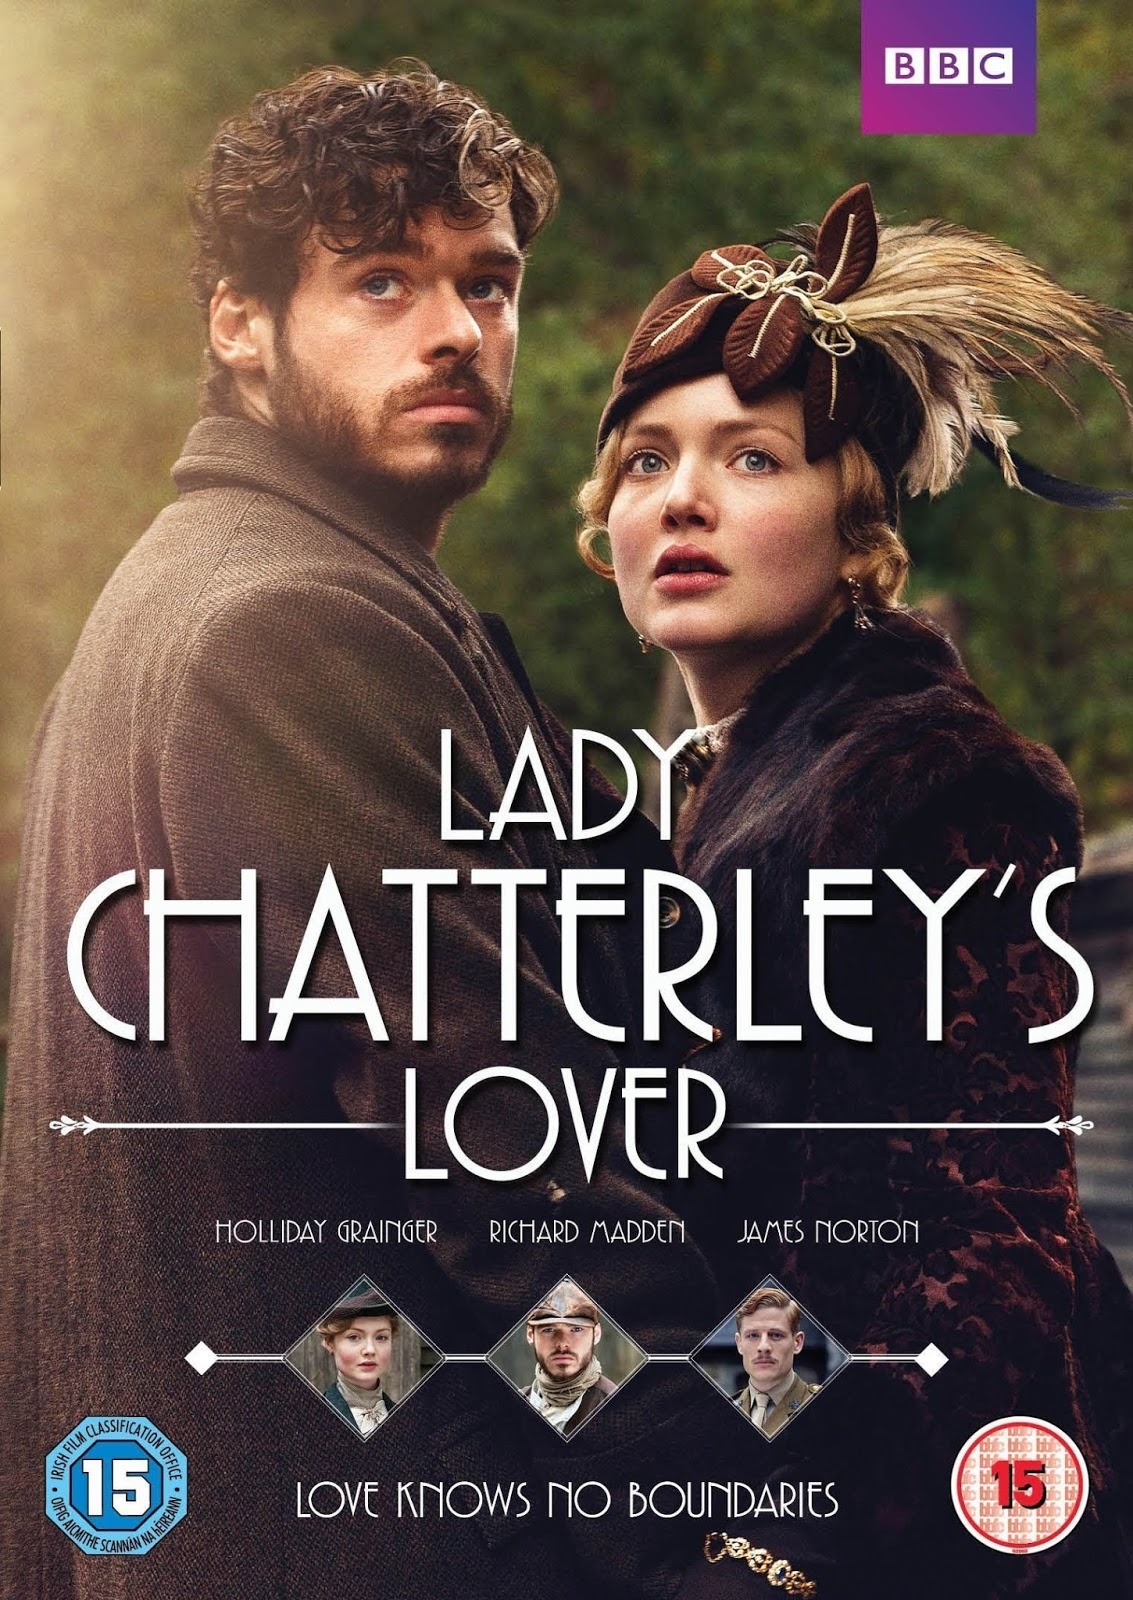 lady chatterleys lover film online subtitrat Lady chatterley's lover online a film adaptation of dh lawrence's novel after a crippling injury leaves her husband impotent, lady chatterly is torn between her love for her husband and her physical desires subtitrat in romana lady chatterley's lover gratis hd.